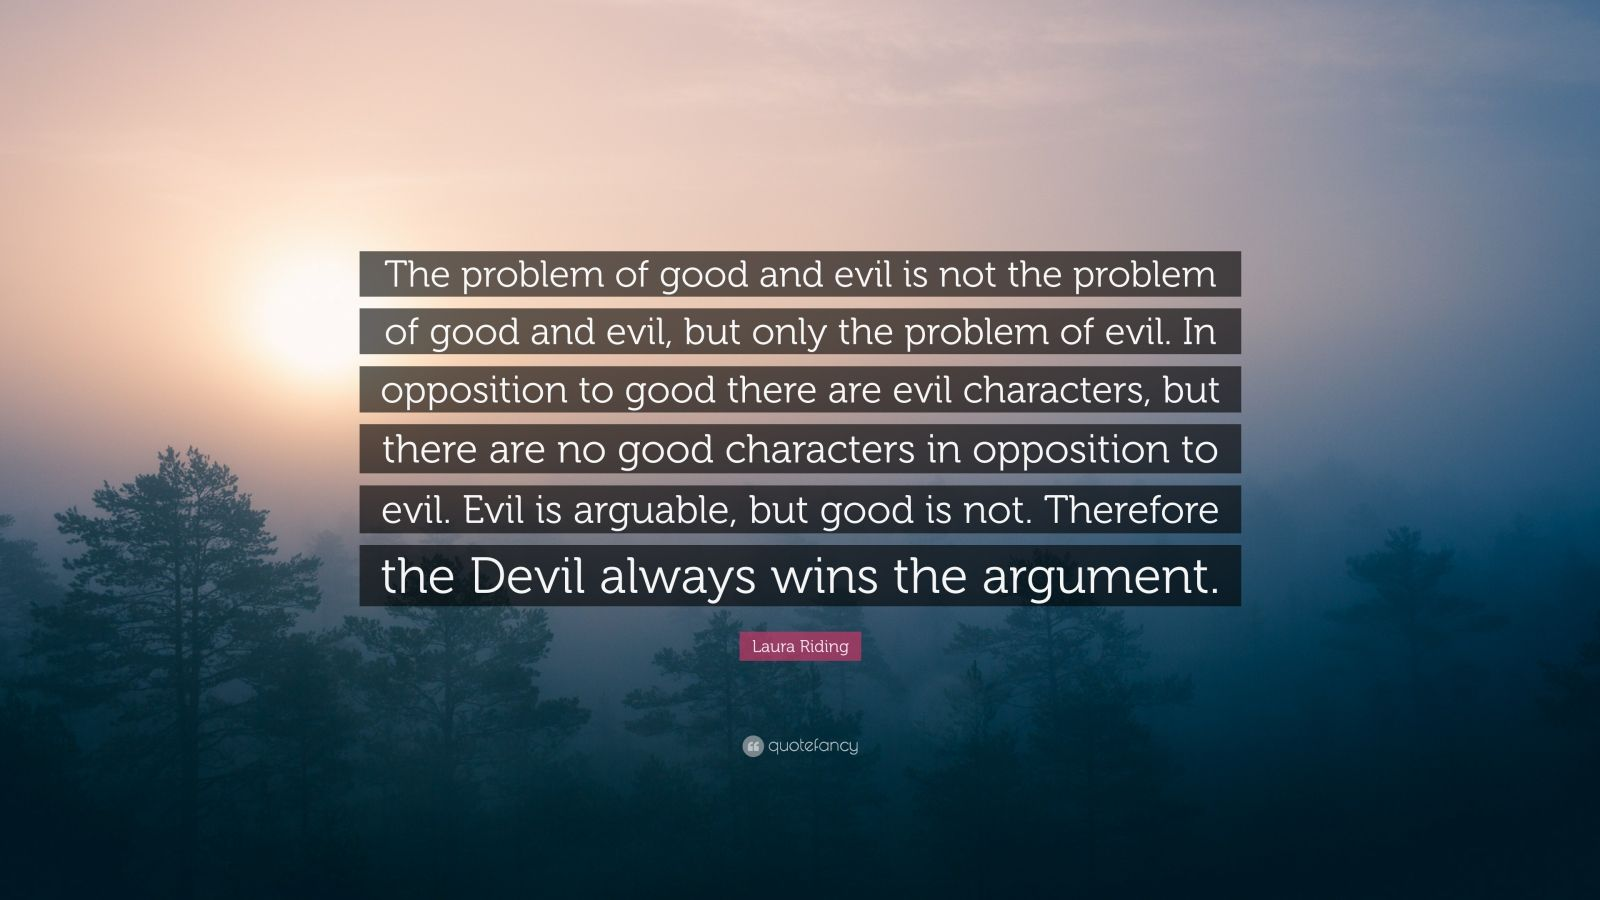 """Laura Riding Quote: """"The problem of good and evil is not the problem of good and evil, but only the problem of evil. In opposition to good there are evil characters, but there are no good characters in opposition to evil. Evil is arguable, but good is not. Therefore the Devil always wins the argument."""""""